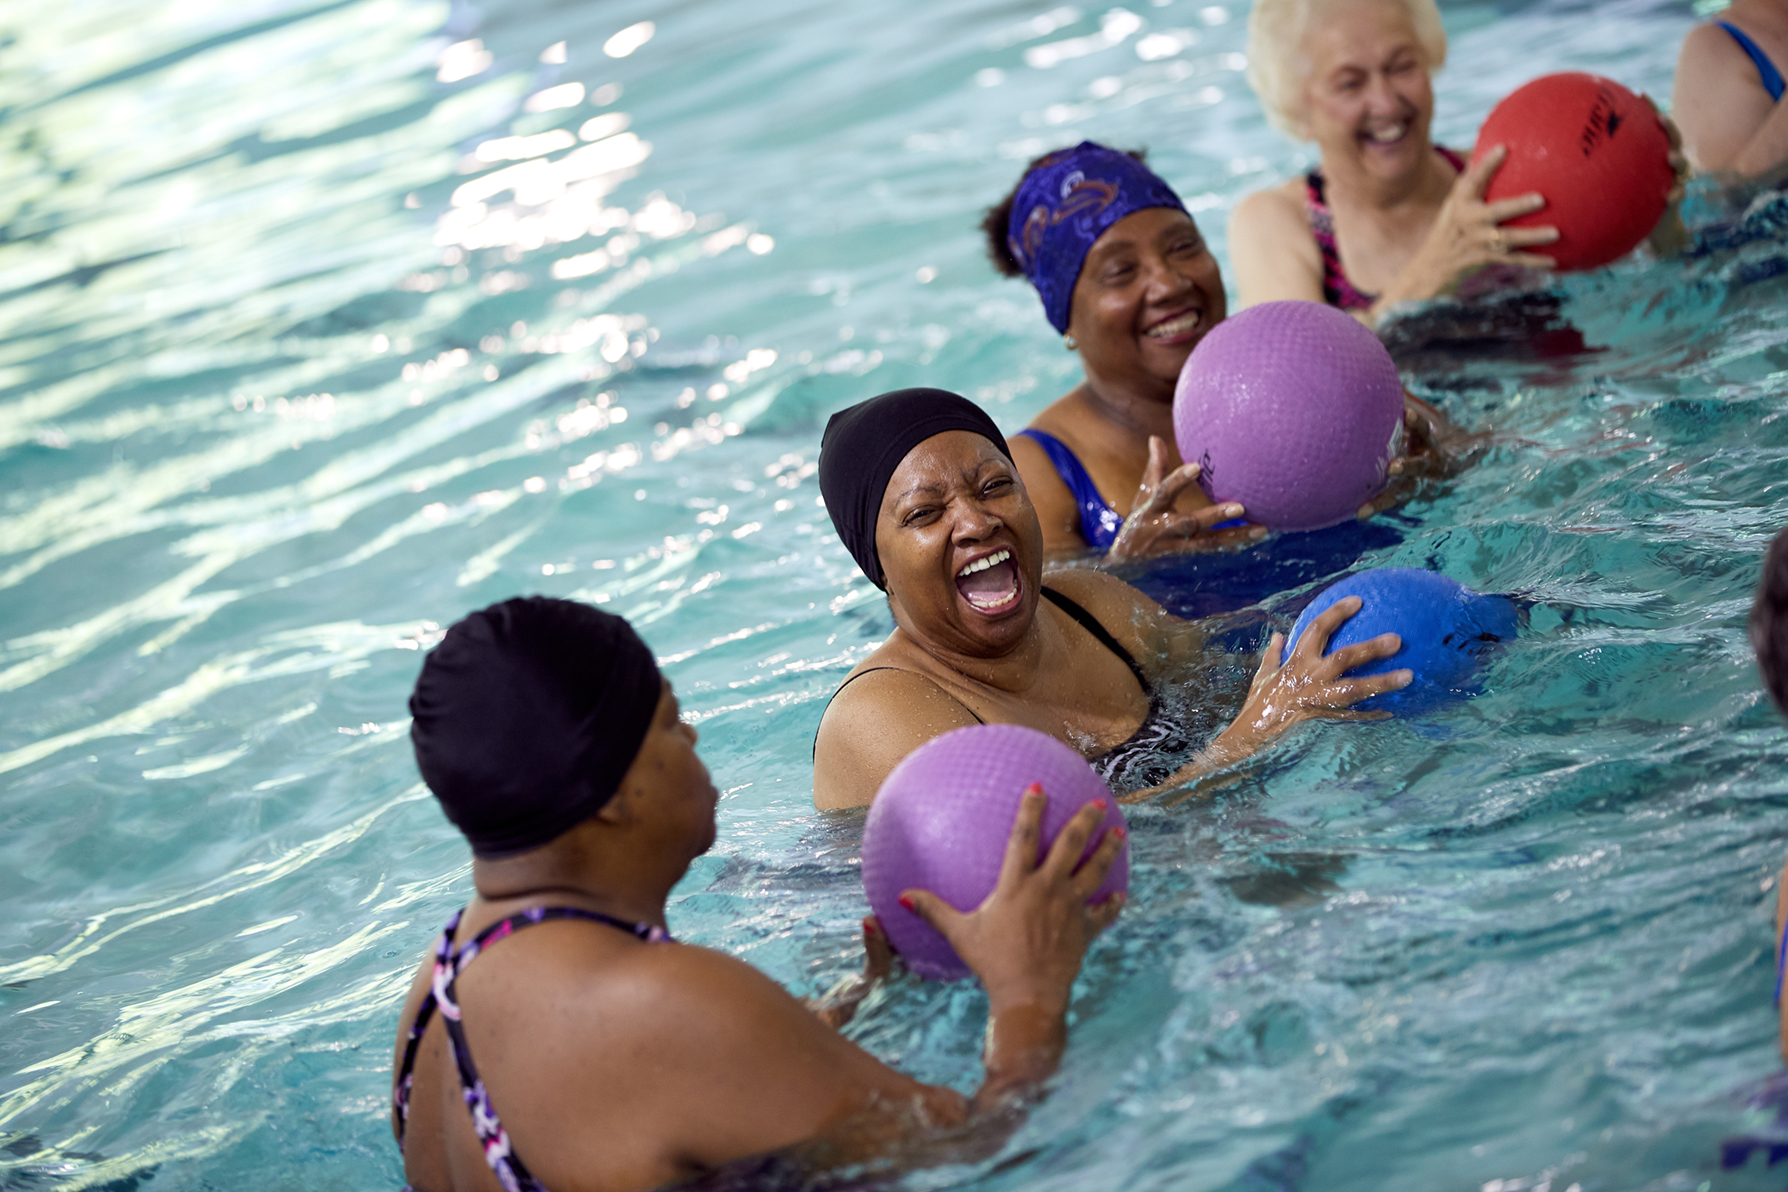 Aquatics - A no impact workout using the resistance of the water. Cardio, water weights, noodles and stretching are done in these classes. Great for arthritis and post-rehab. See Schedule →